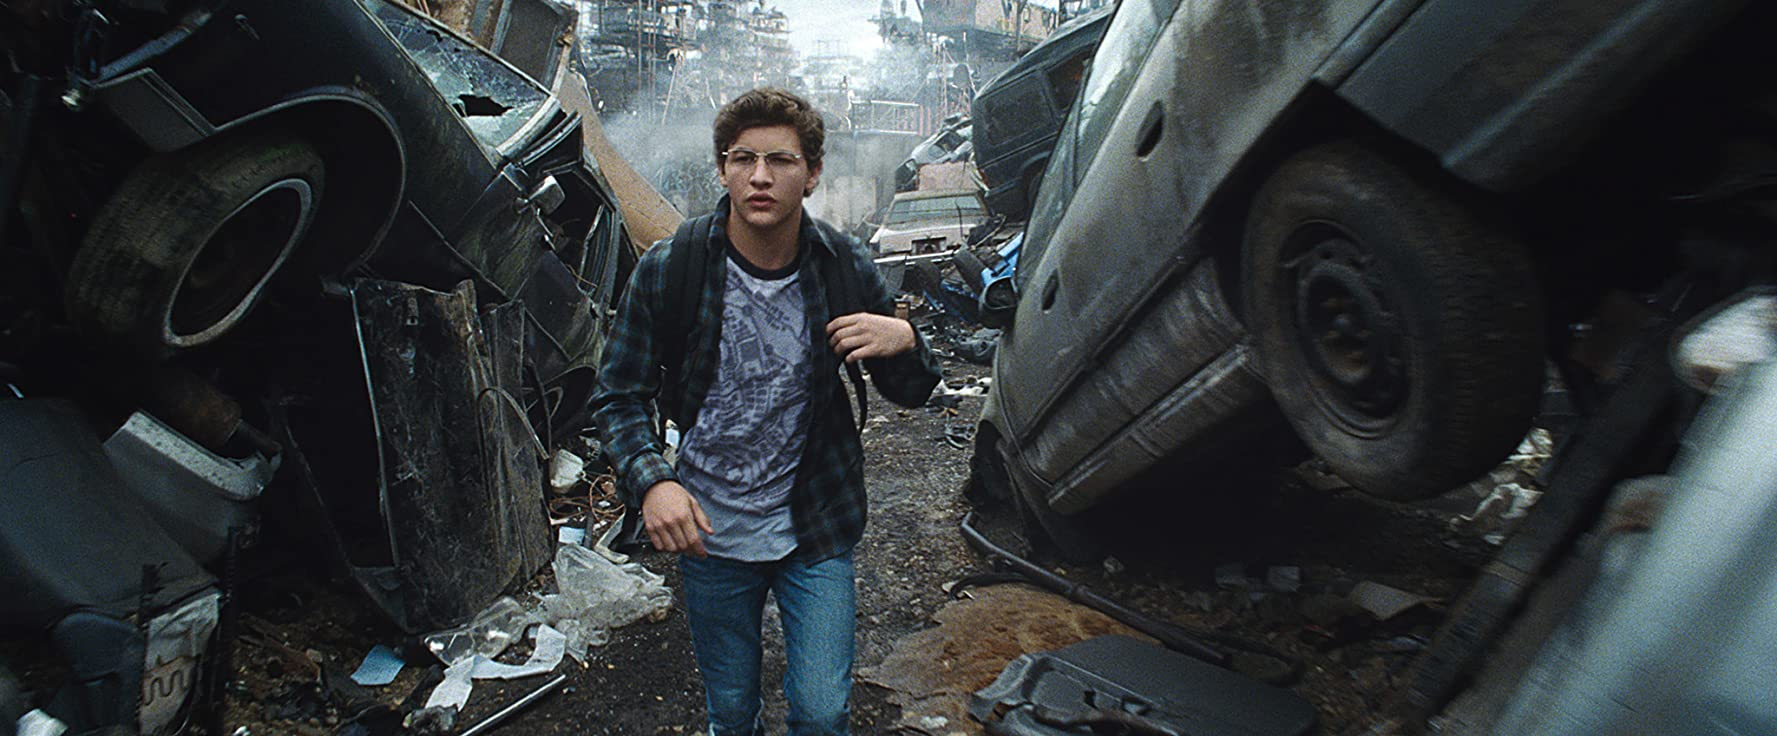 Tye Sheridan in Ready Player One (2018)